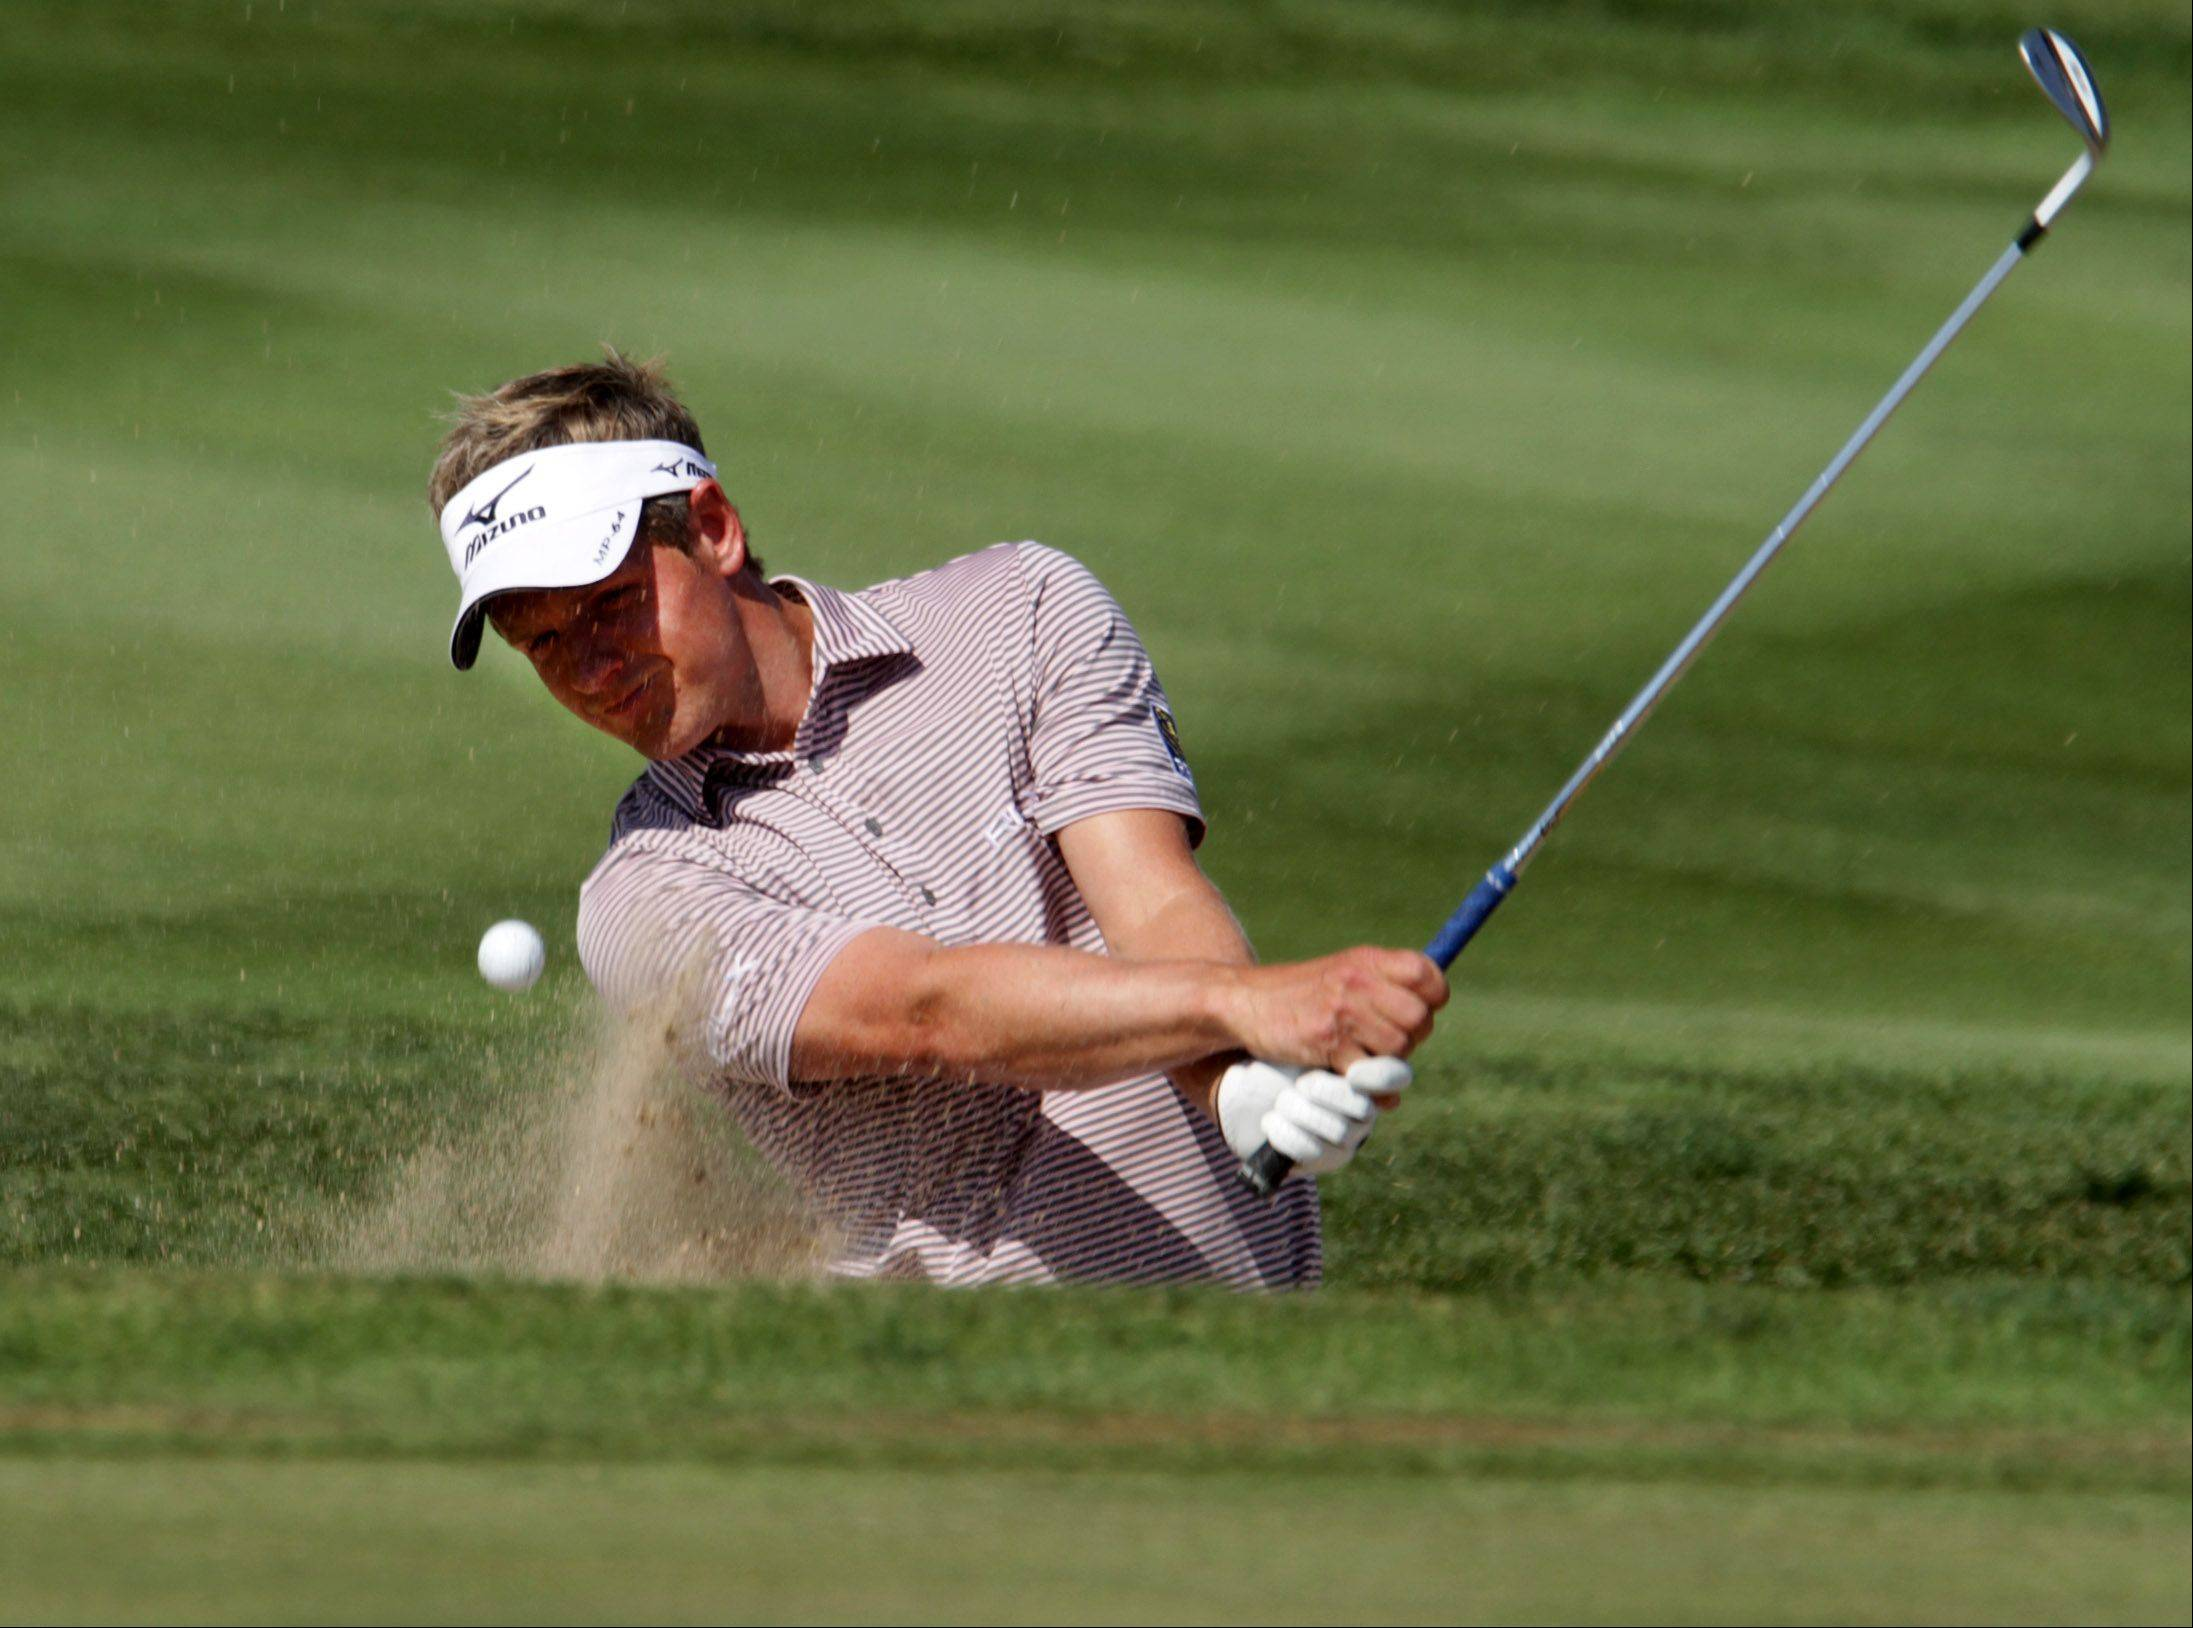 Luke Donald practice swinging from a sand on the putting green for the BMW Championship at Conway Farms Golf Club in Lake Forest on Tuesday. Luke's home club is Conway Farms Golf Club.